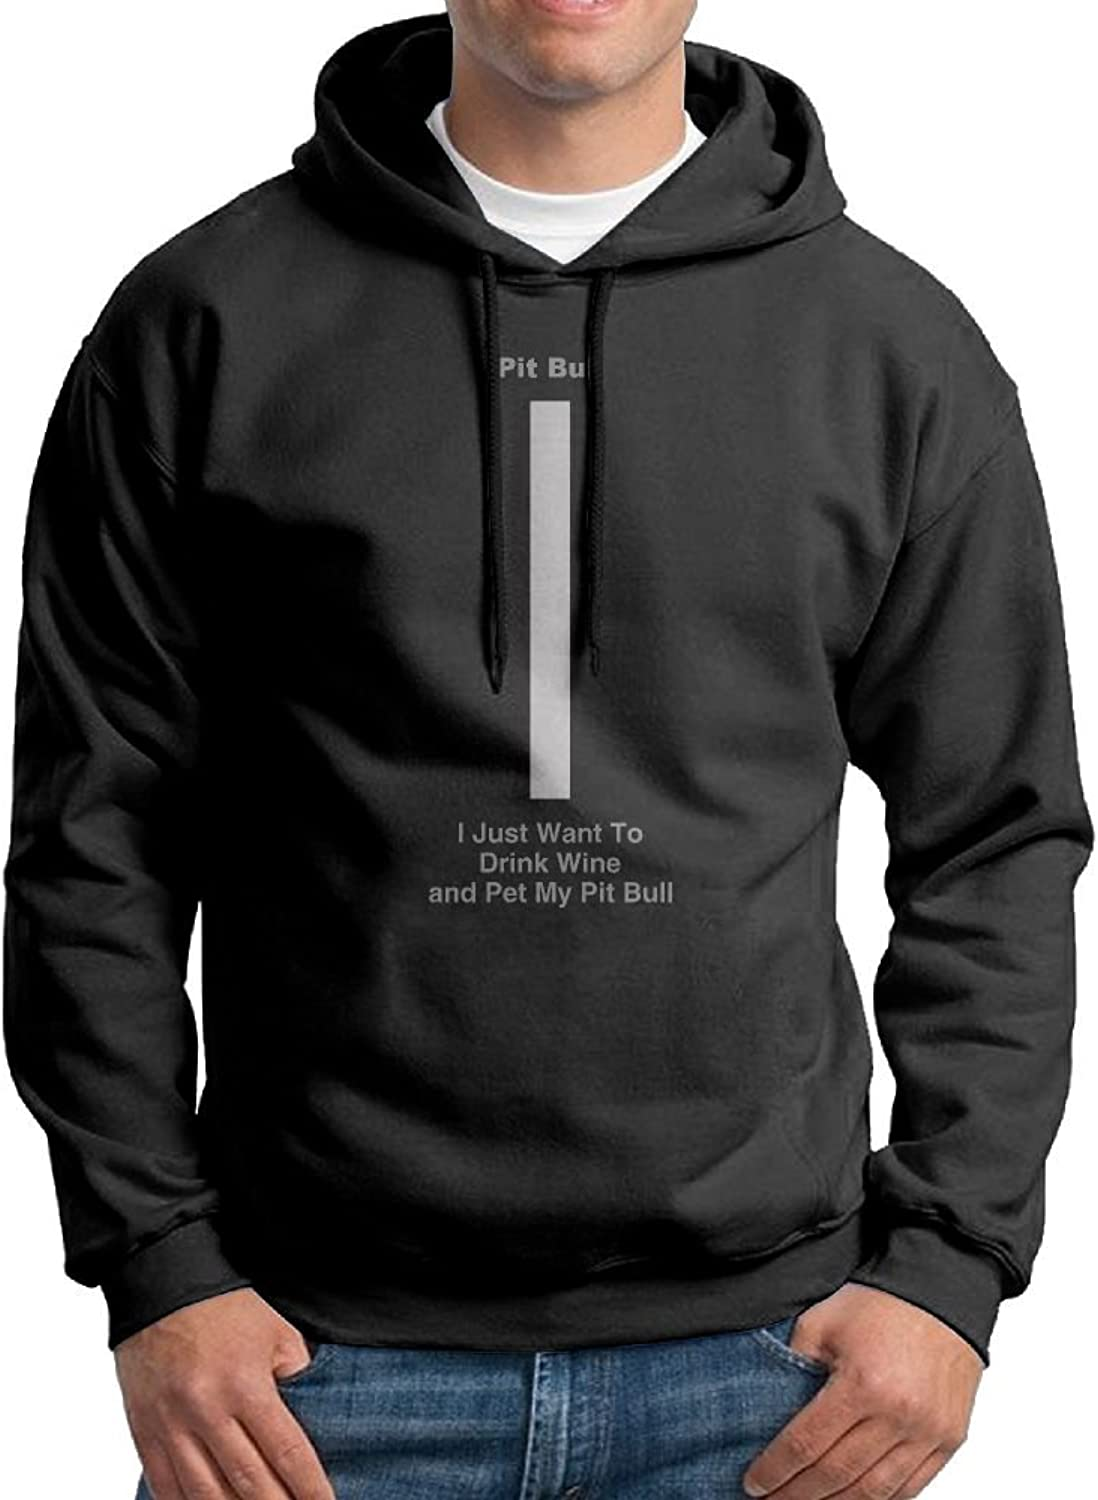 Men I Just Want To Drink Wine And Pet My Pit Bull. Bts Hoodie Funny Hoodies For Men Personality